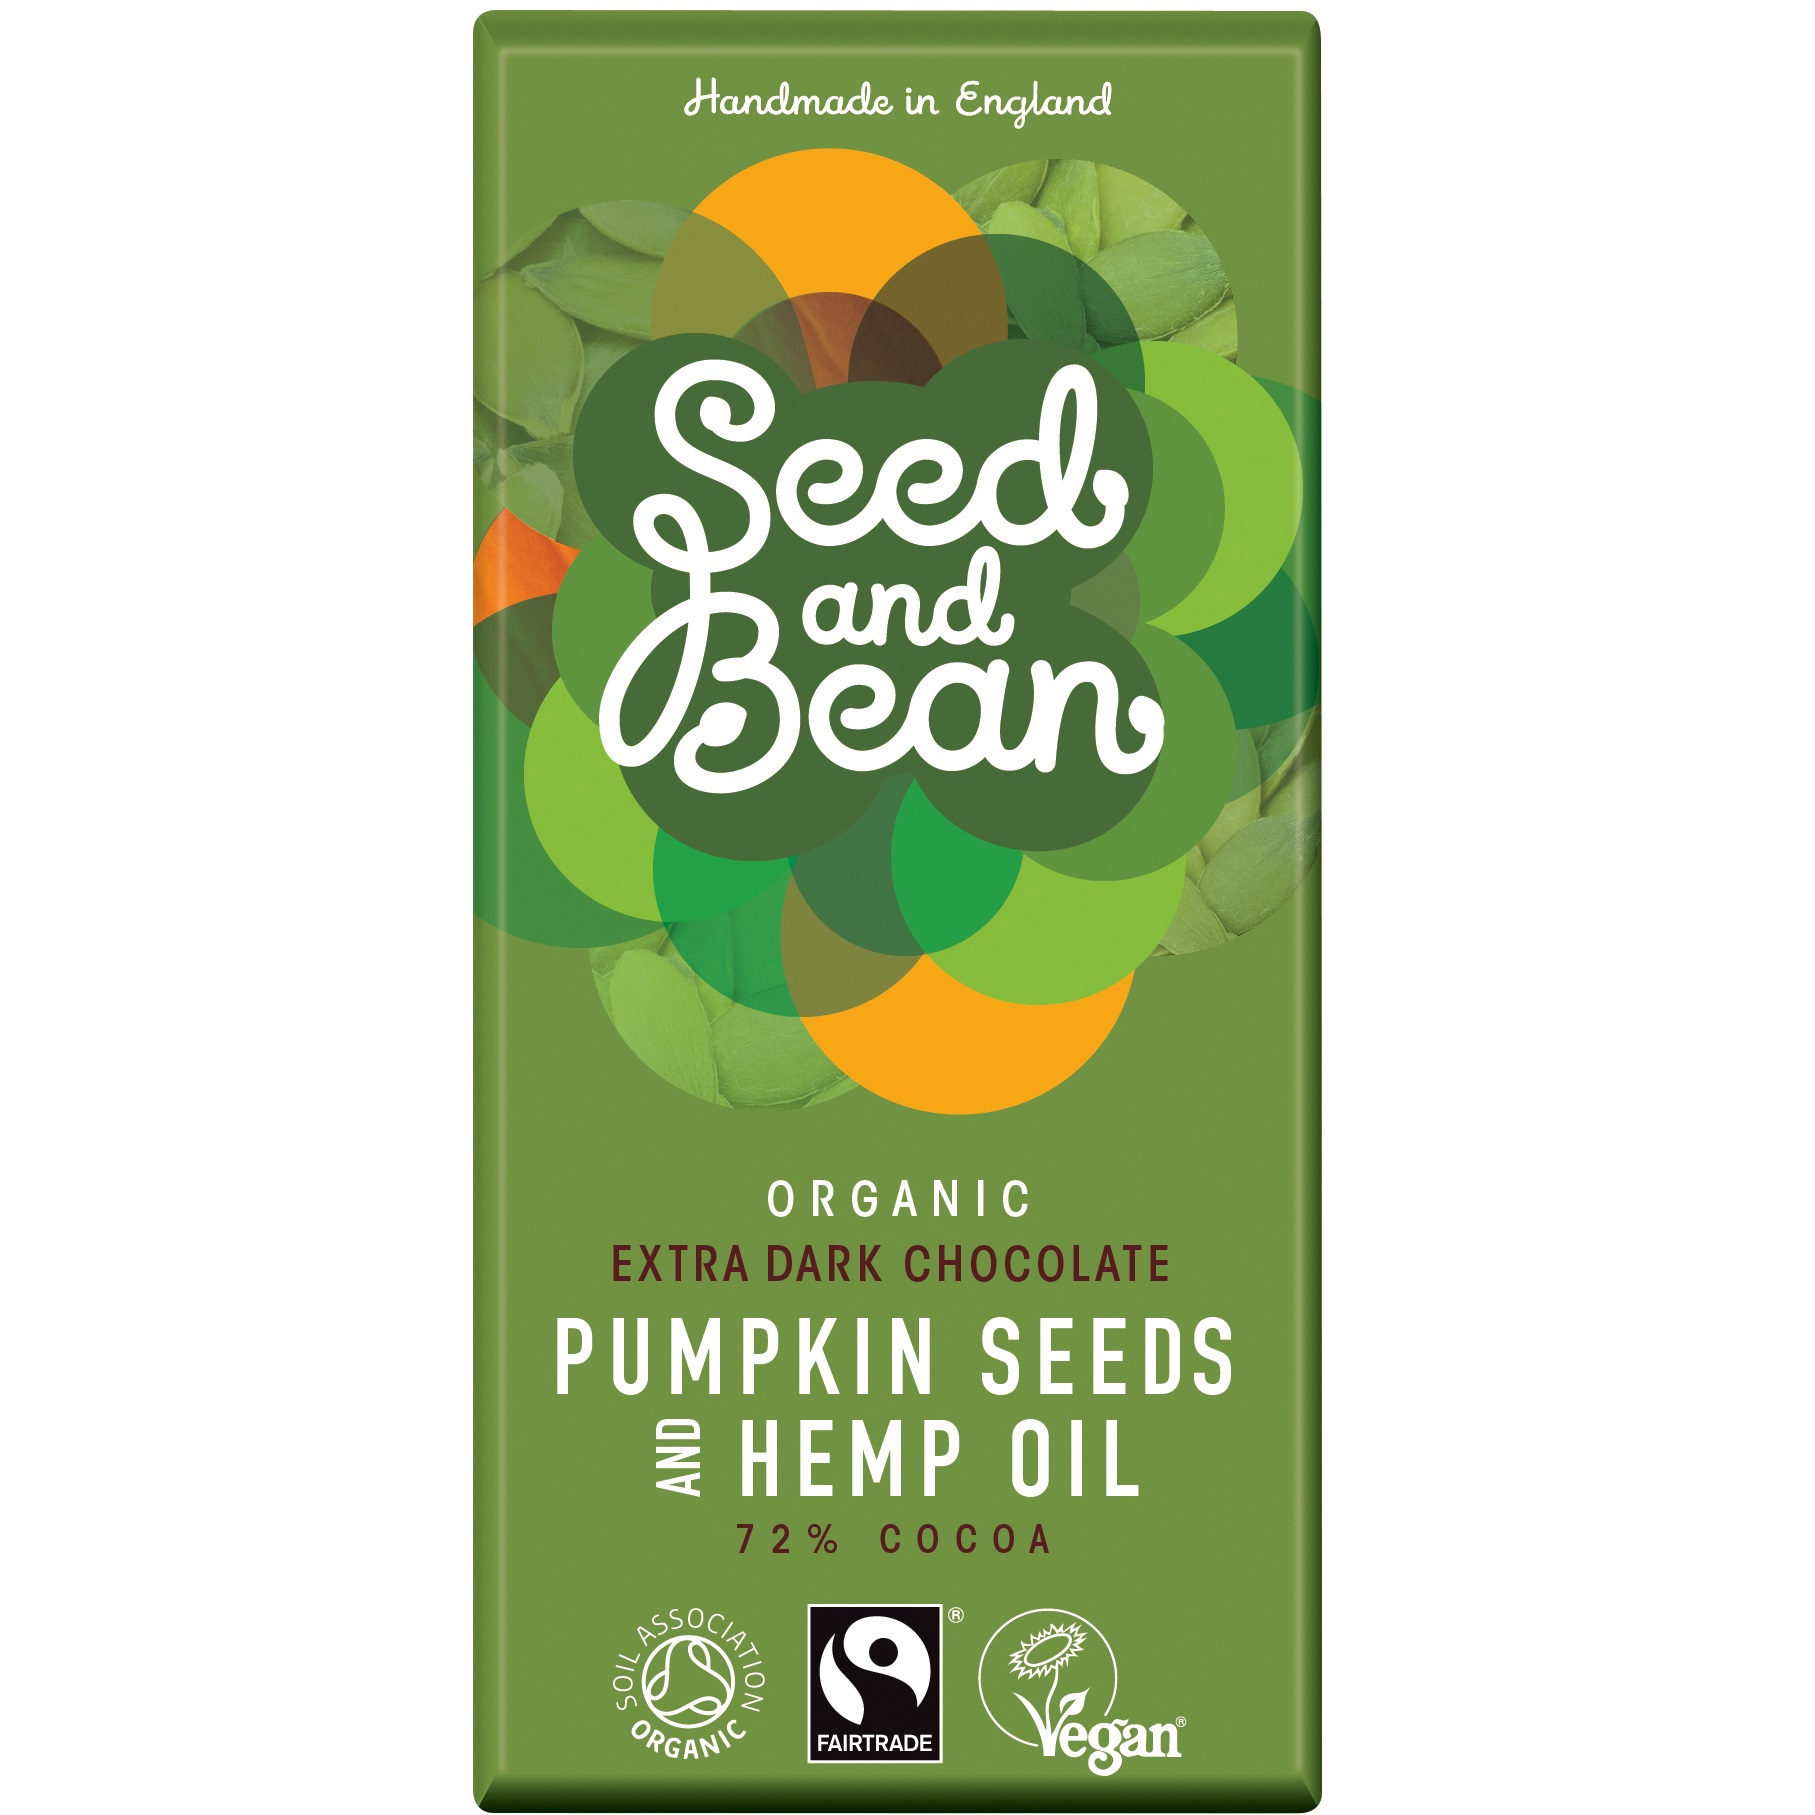 Www.twenga.de Pumpkin Seeds Hemp Oil 72 Extra Dark Seed Bean Vegan Organic Chocolate Bar 85g